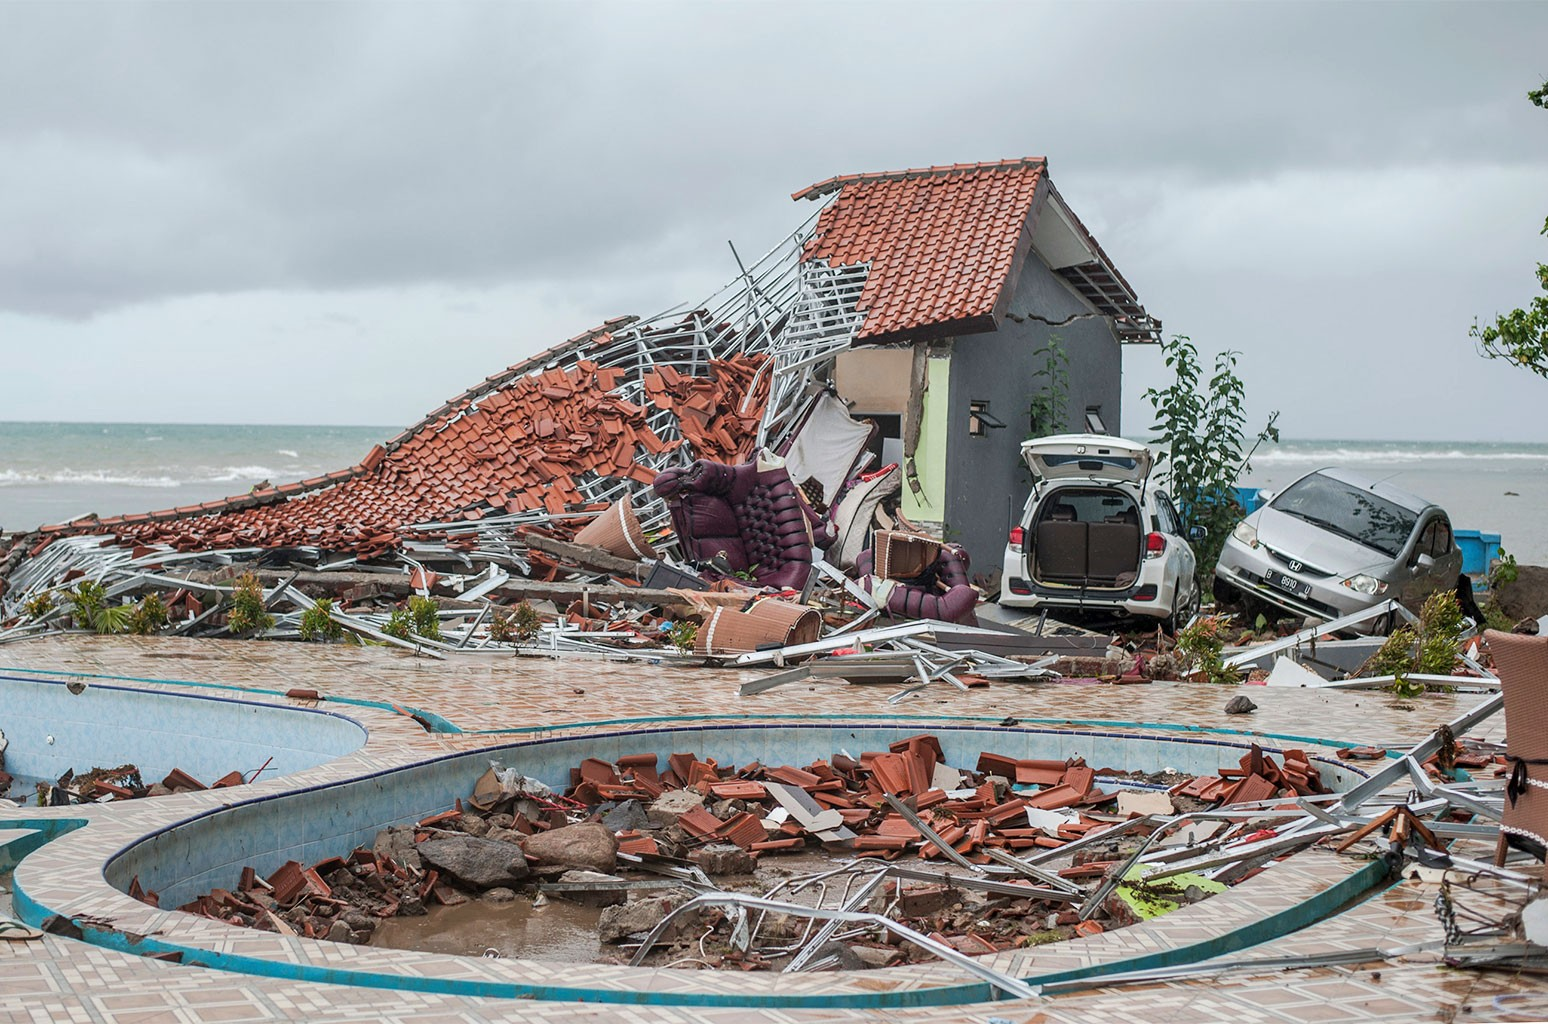 Debris littered a property badly damaged by a tsunami in Carita, Indonesia on Dec. 23, 2018.